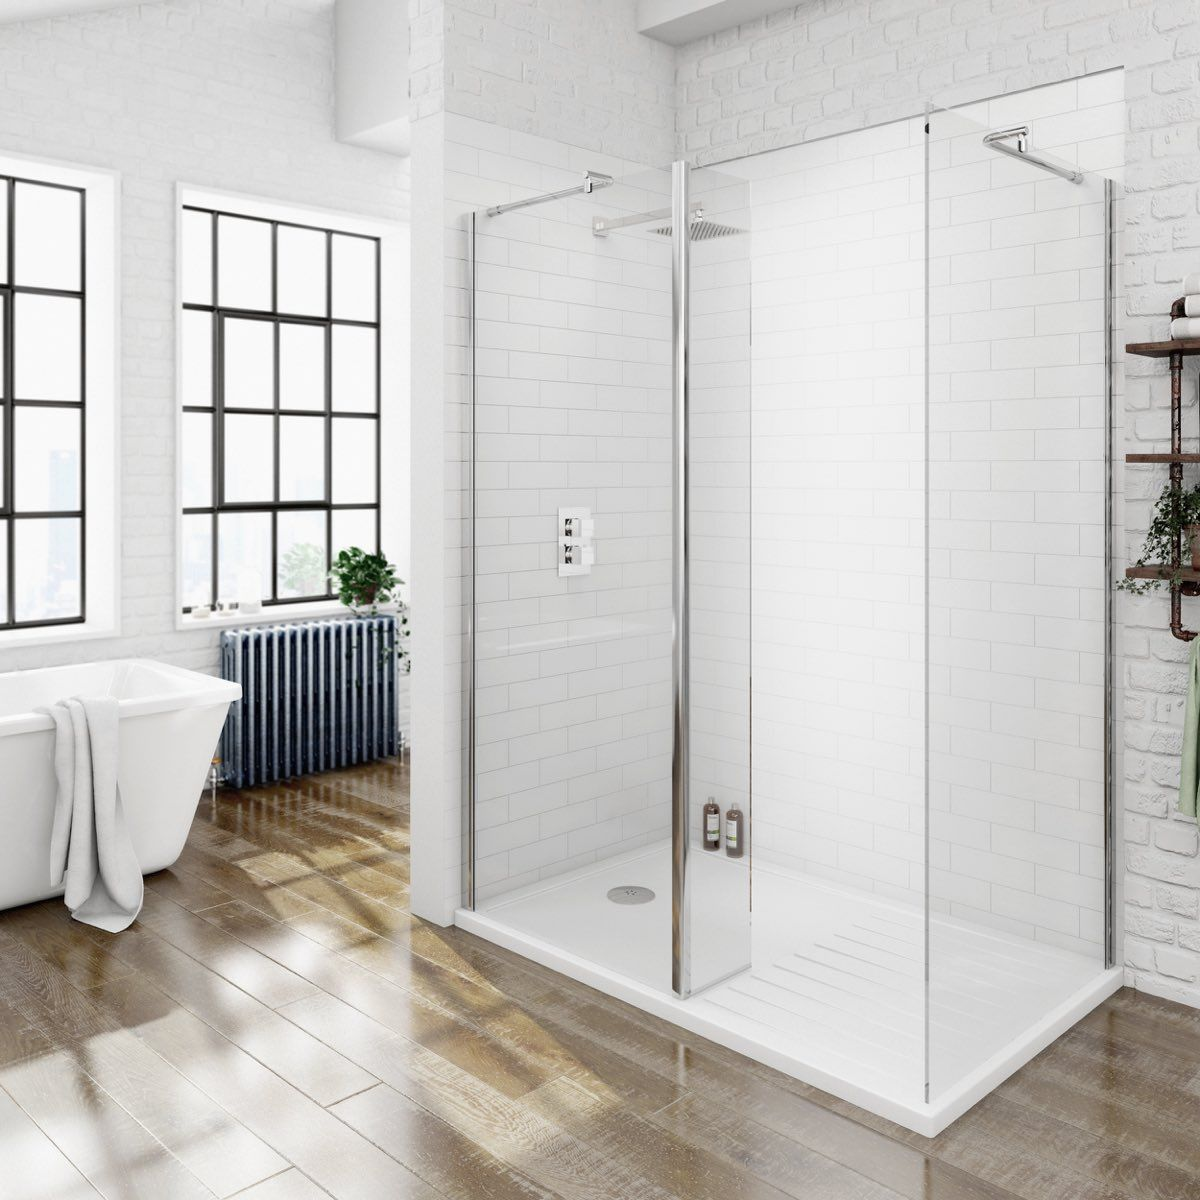 Superior L Shaped Shower Tray Part - 14: Best 25+ Walk In Shower Tray Ideas On Pinterest   Shower Rooms, Shower And  Wet Room Shower Screens